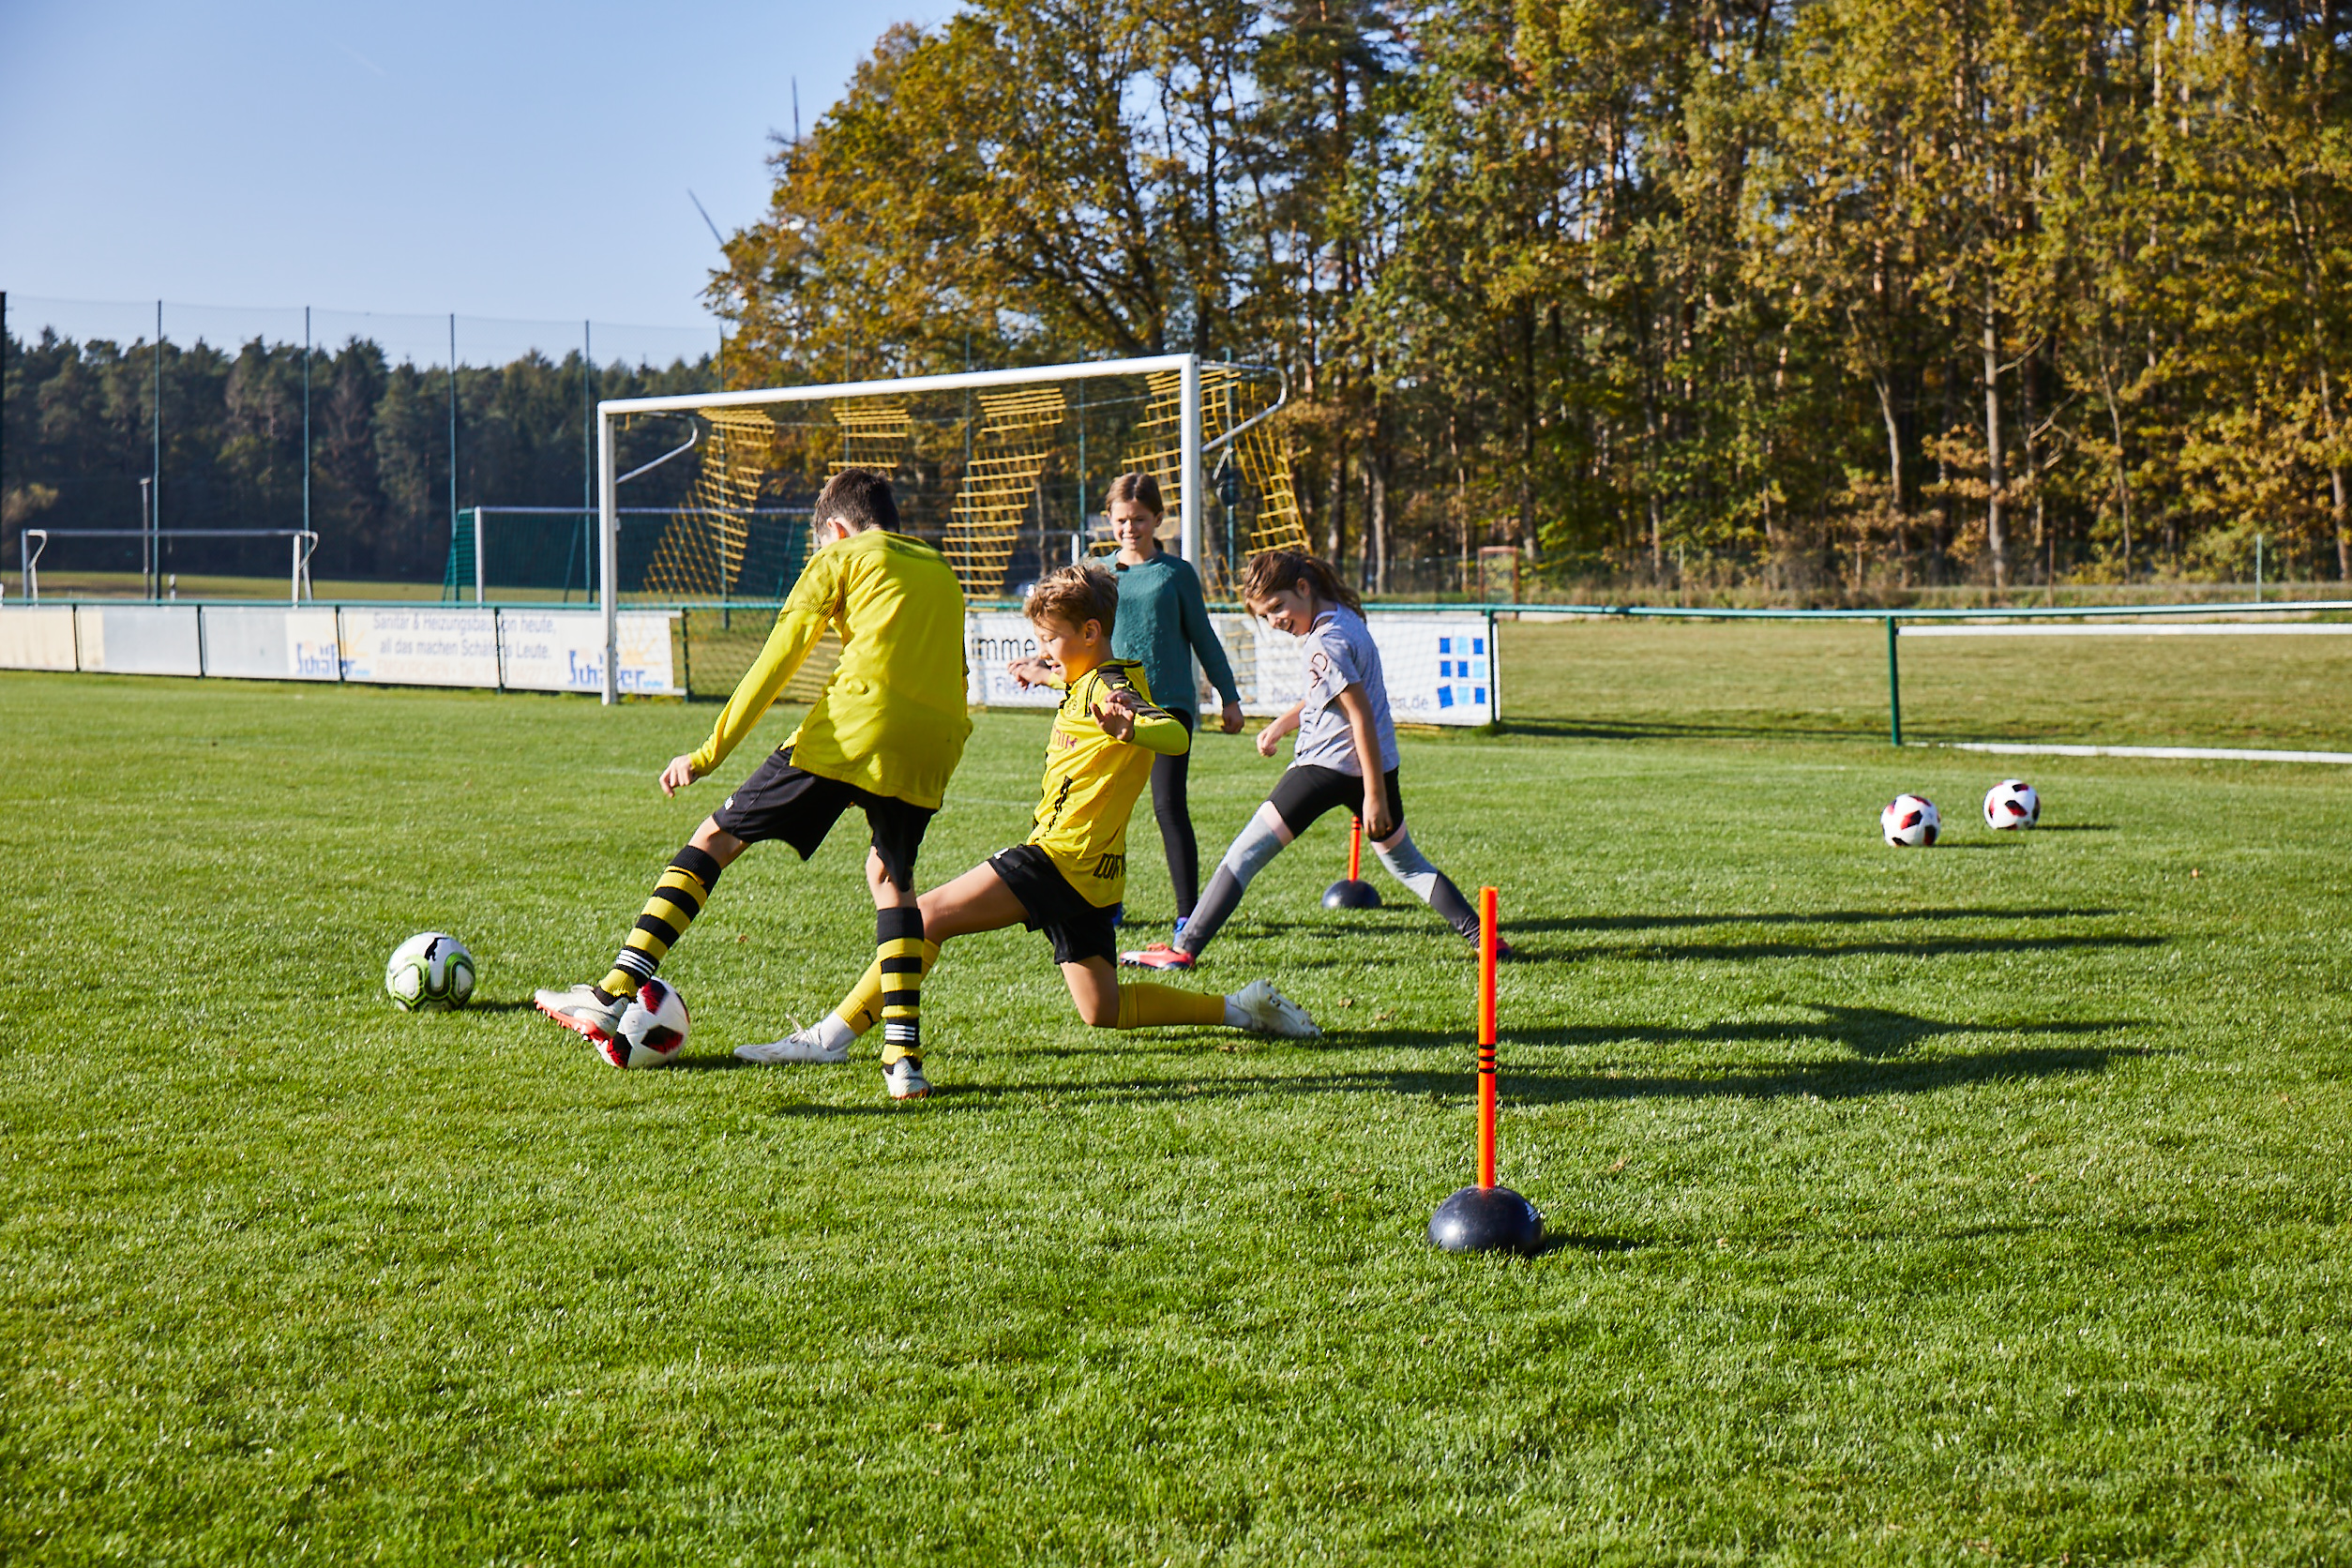 Fussball_Kids_0563